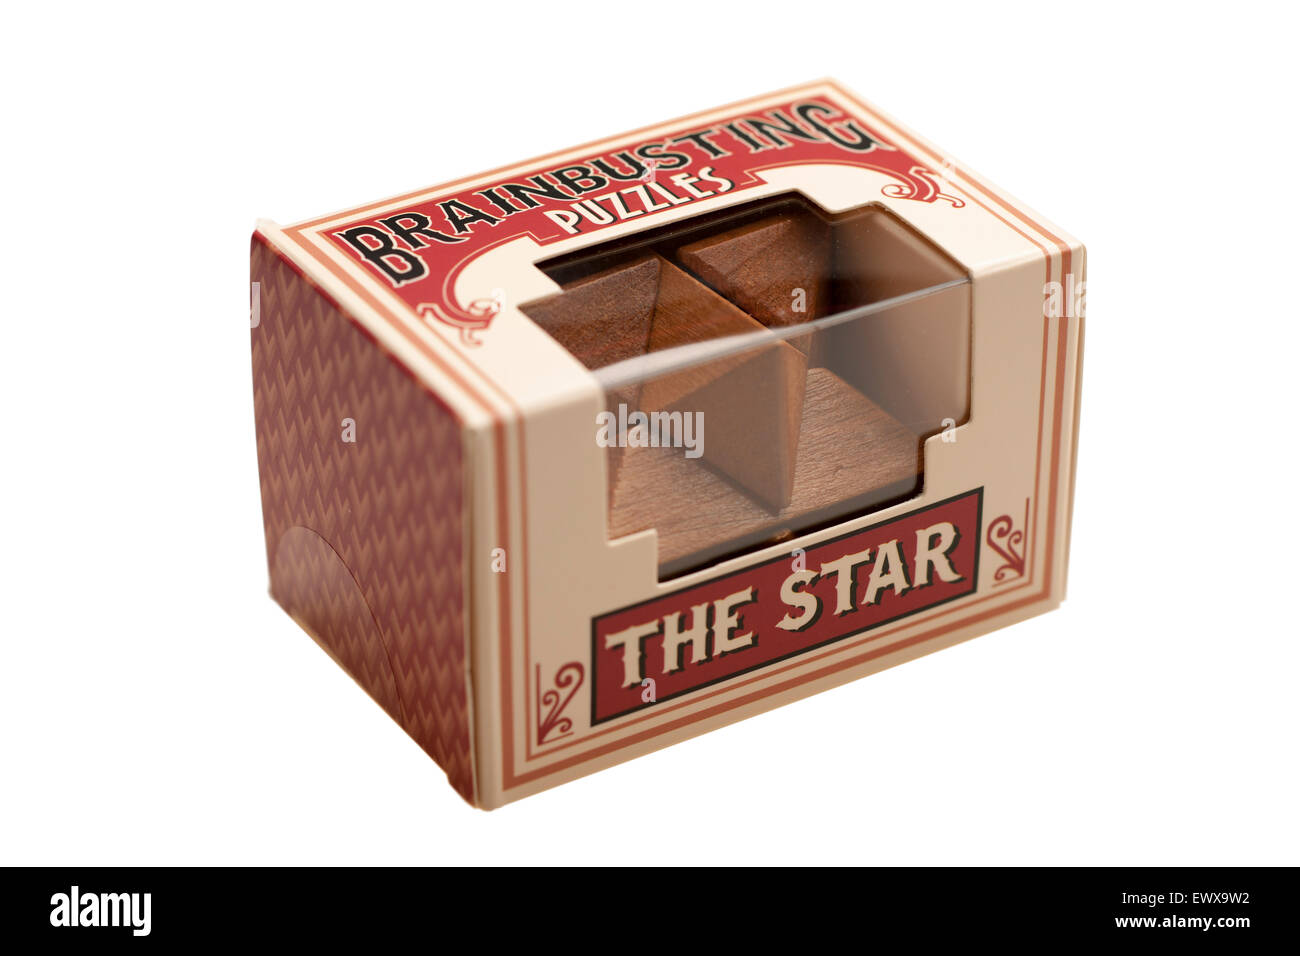 Boxed Brainbusting wooden star puzzle - Stock Image